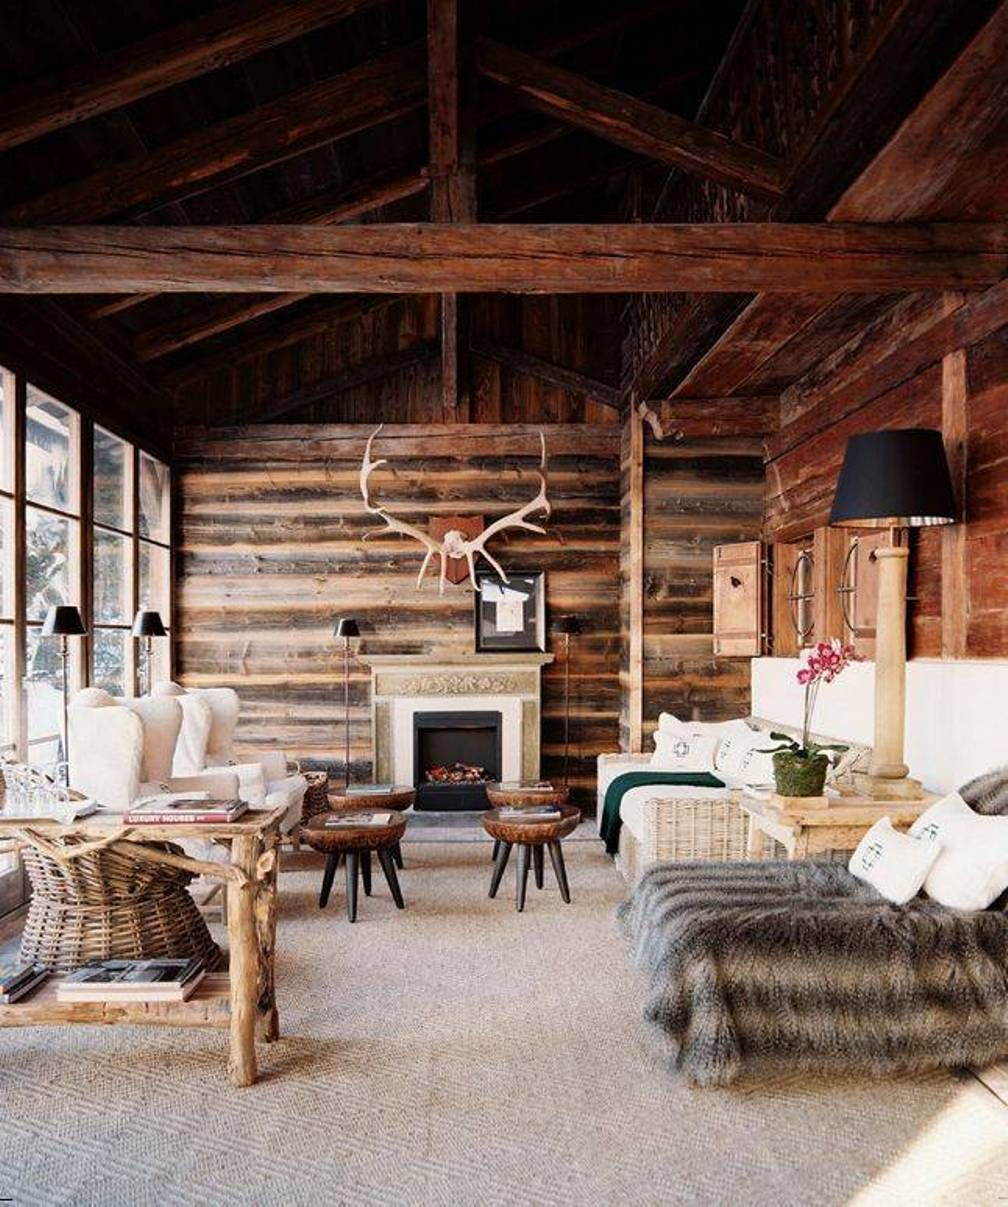 Home Design and Decor , Rustic Interior Design Style For The Home : Rustic  Interior Design Style With Wooden Ceiling And Walls And White Uph.